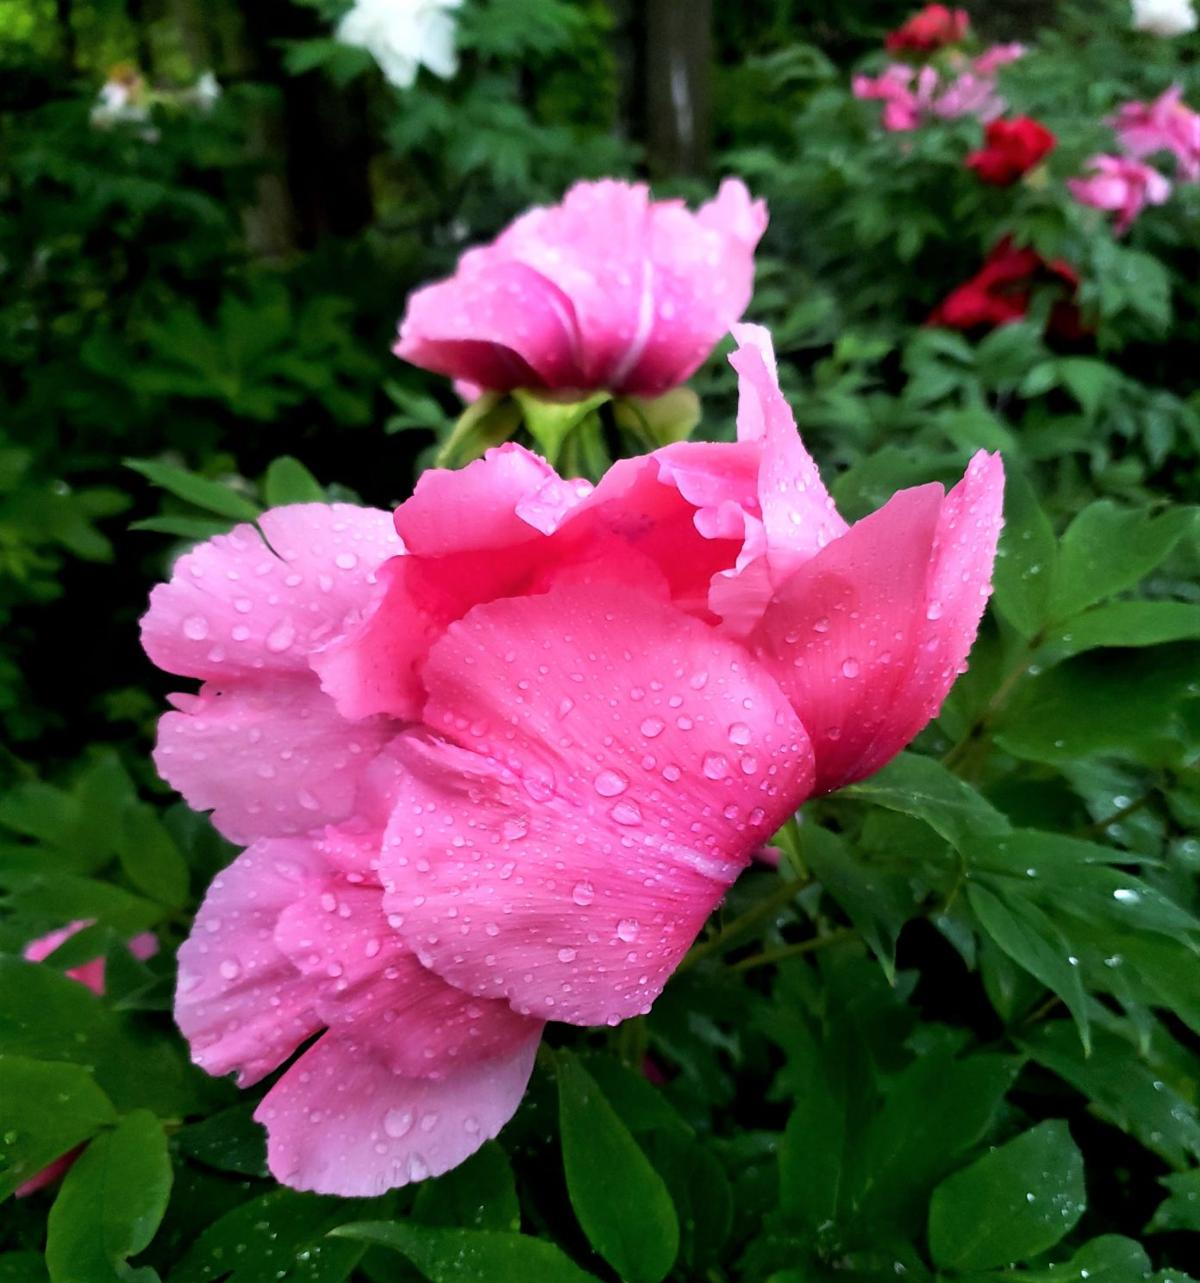 Raindrops on Pink Blossoms